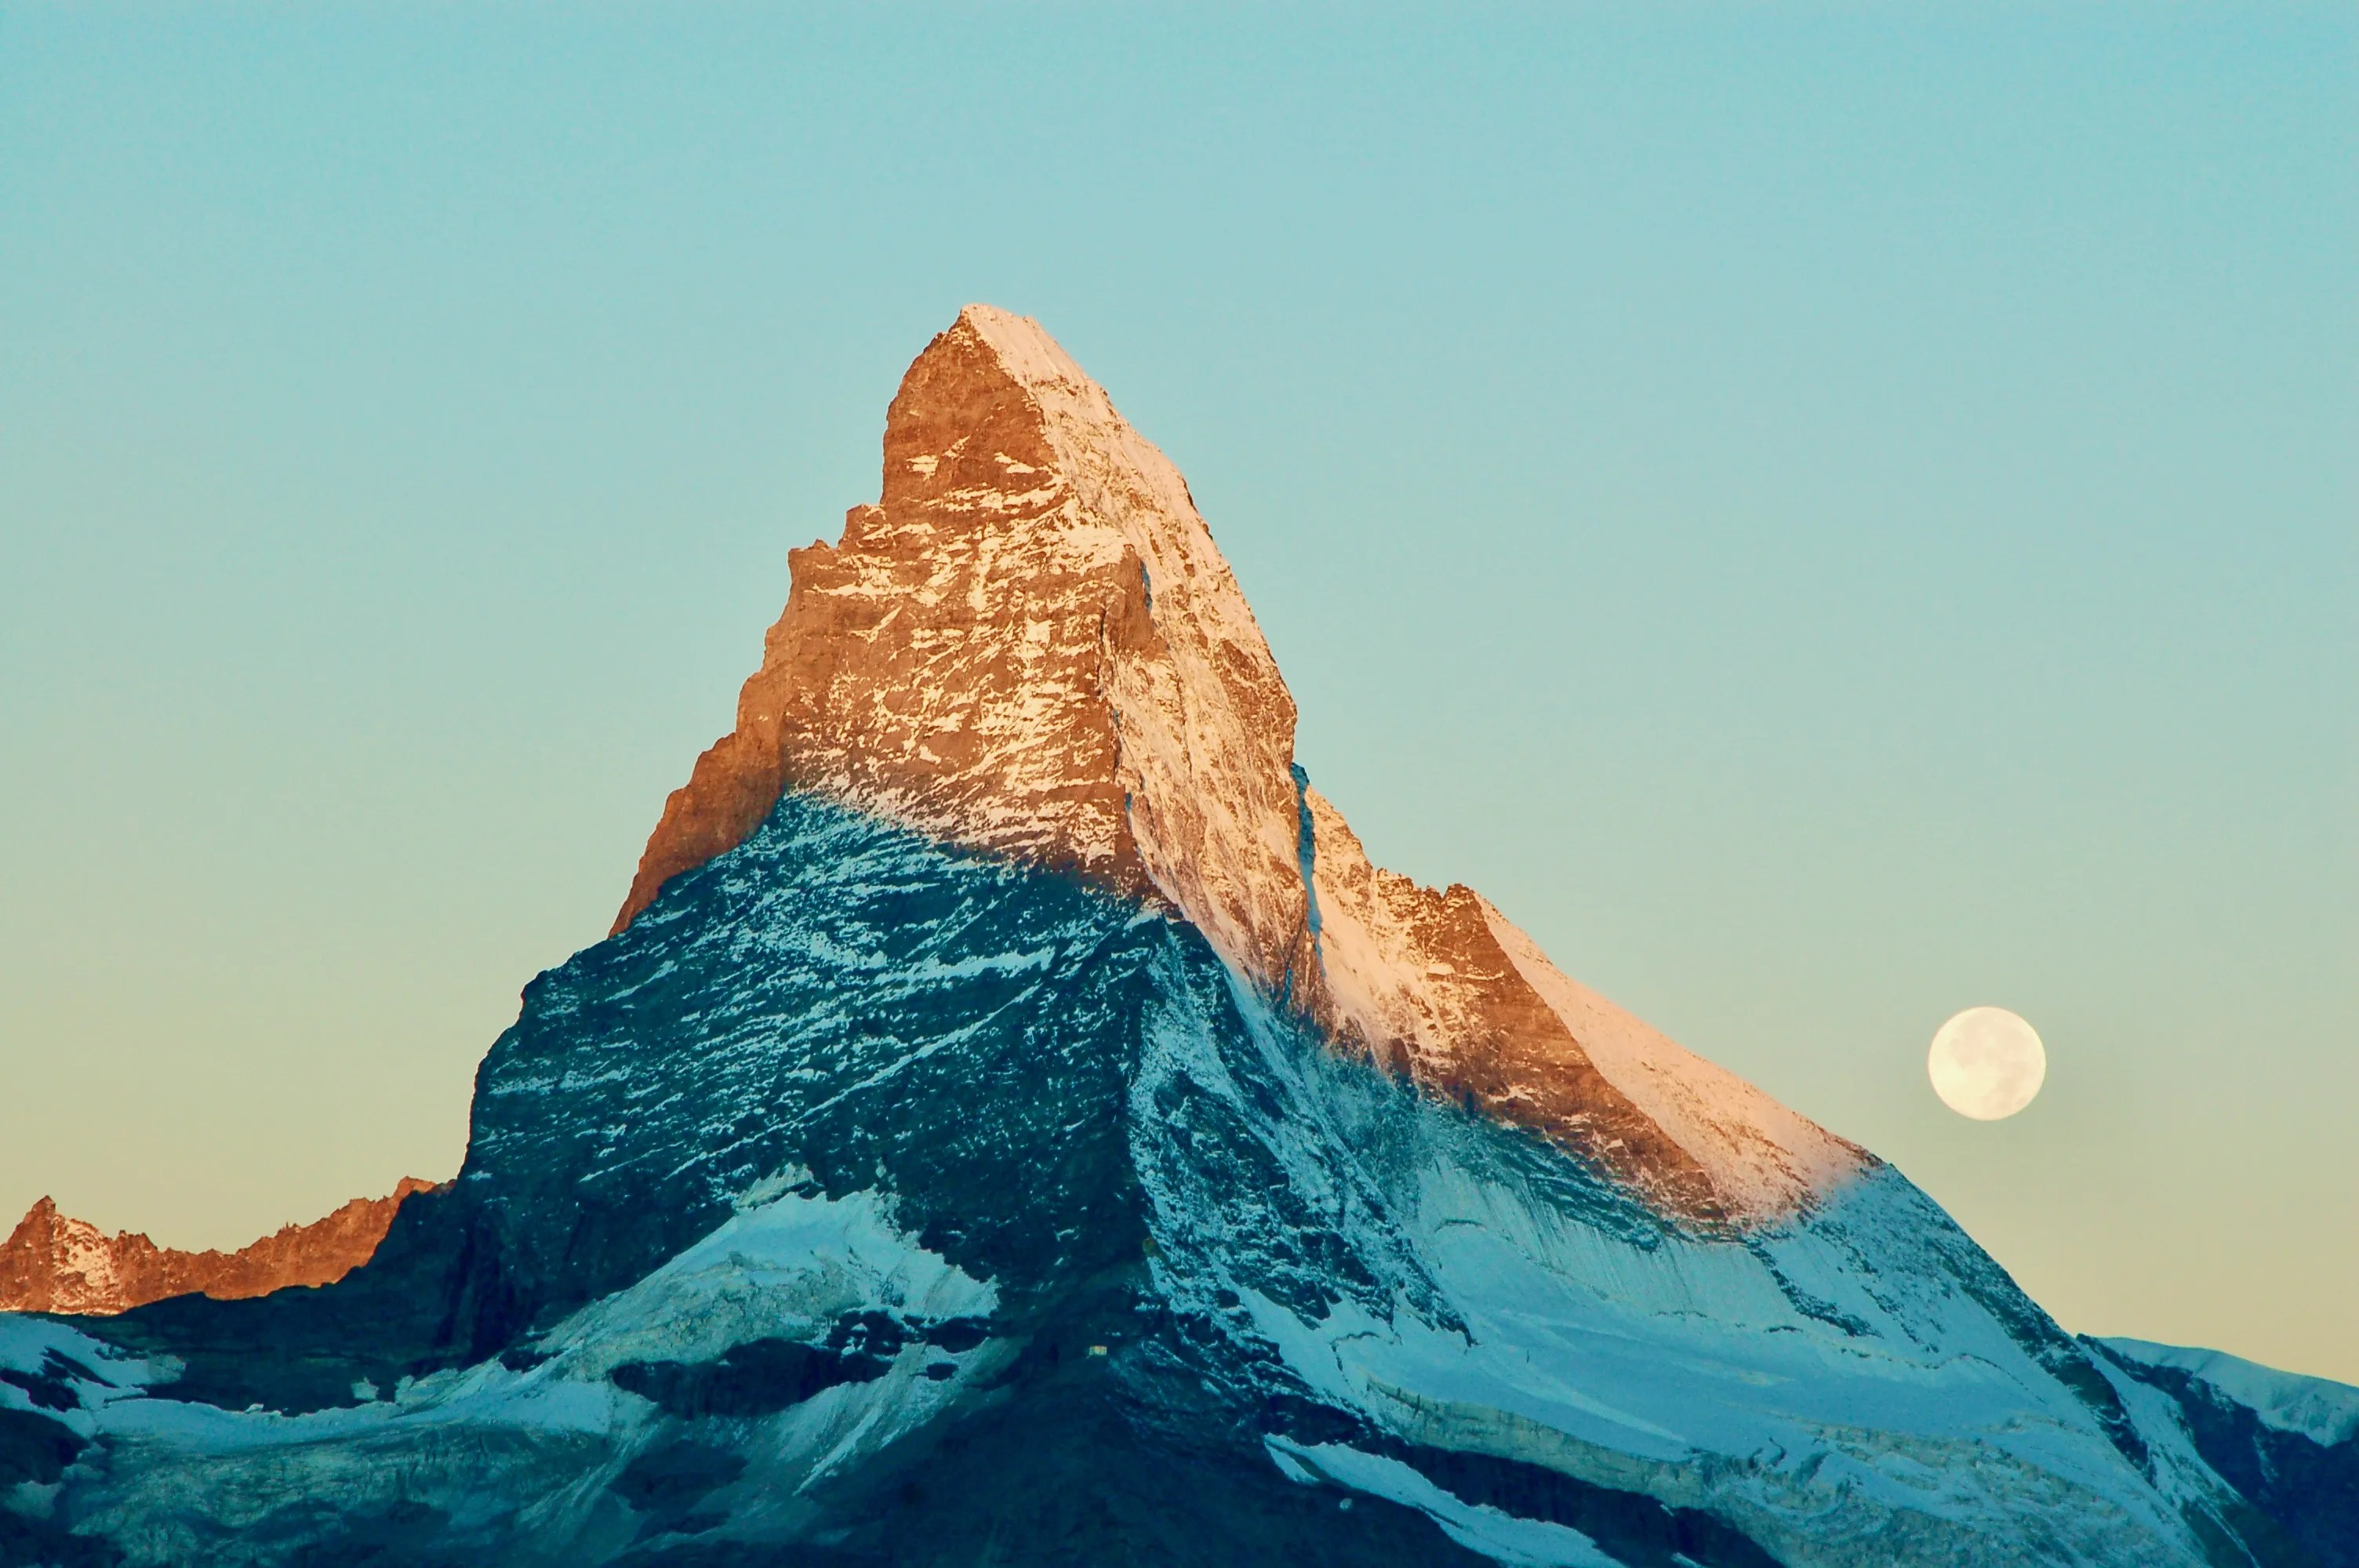 Matterhorn with full moon